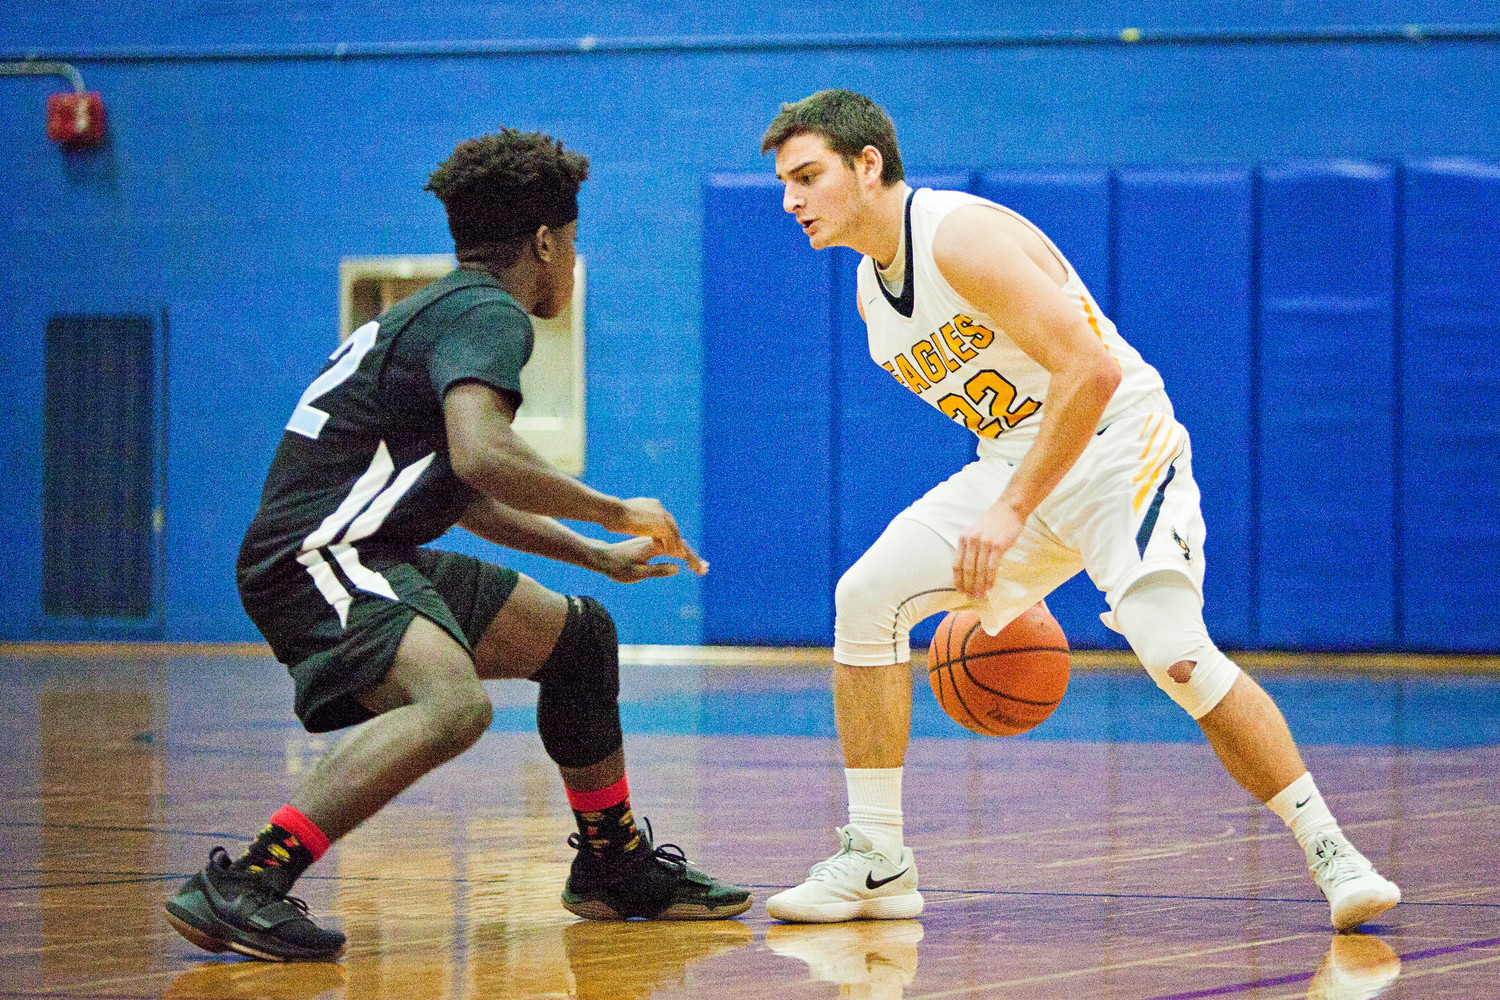 Barrington's Reid Nolan looks to drive past a Holy Name player.